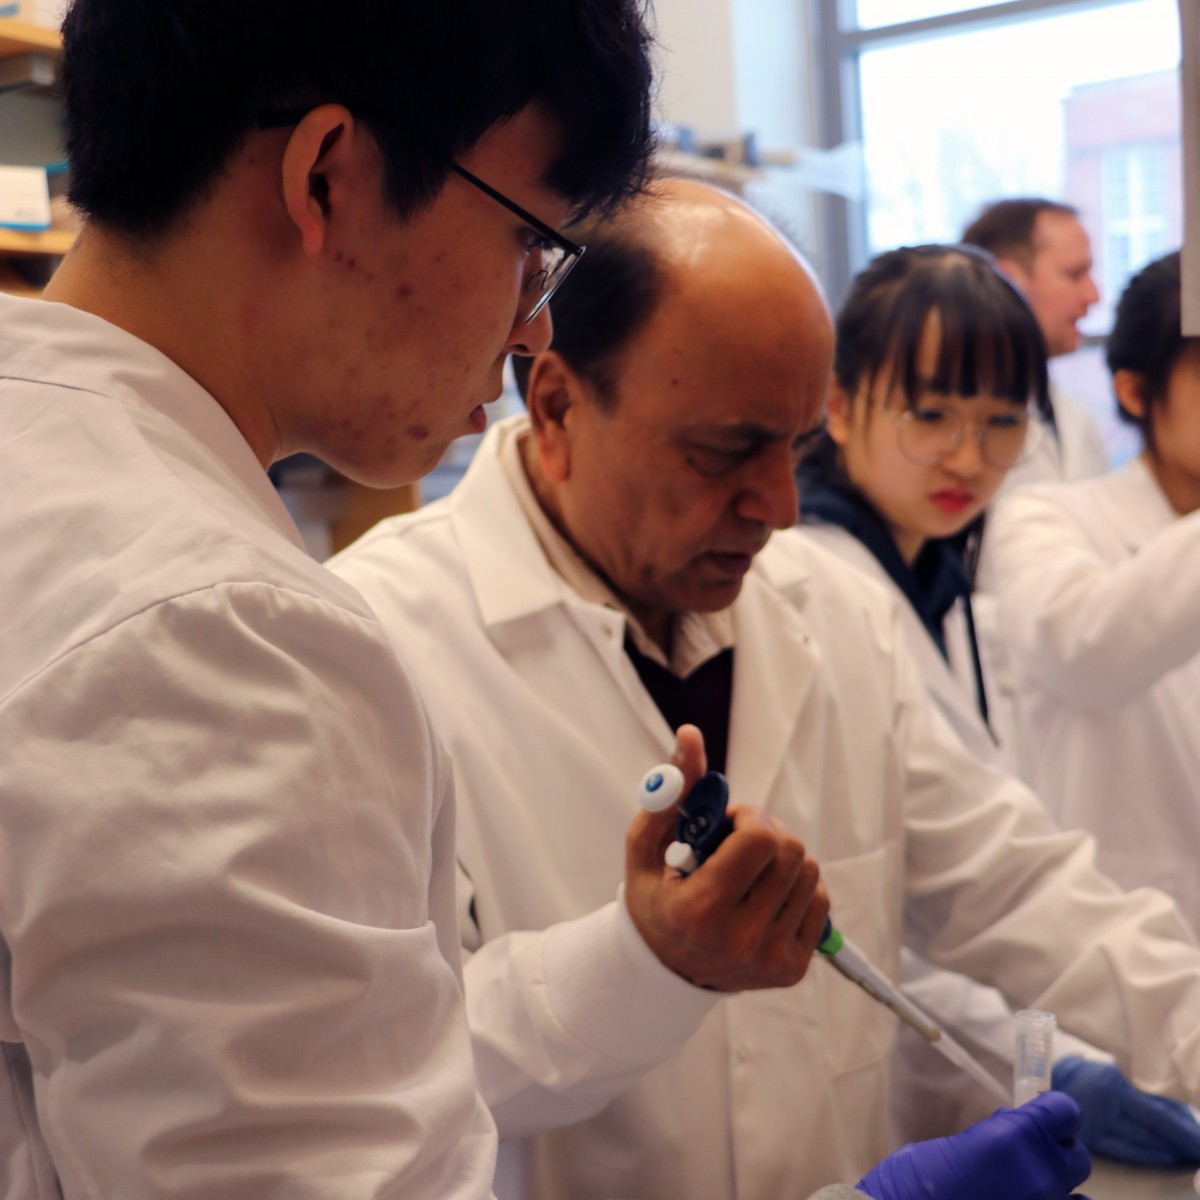 Professor Minocha works with students visiting from South Korea